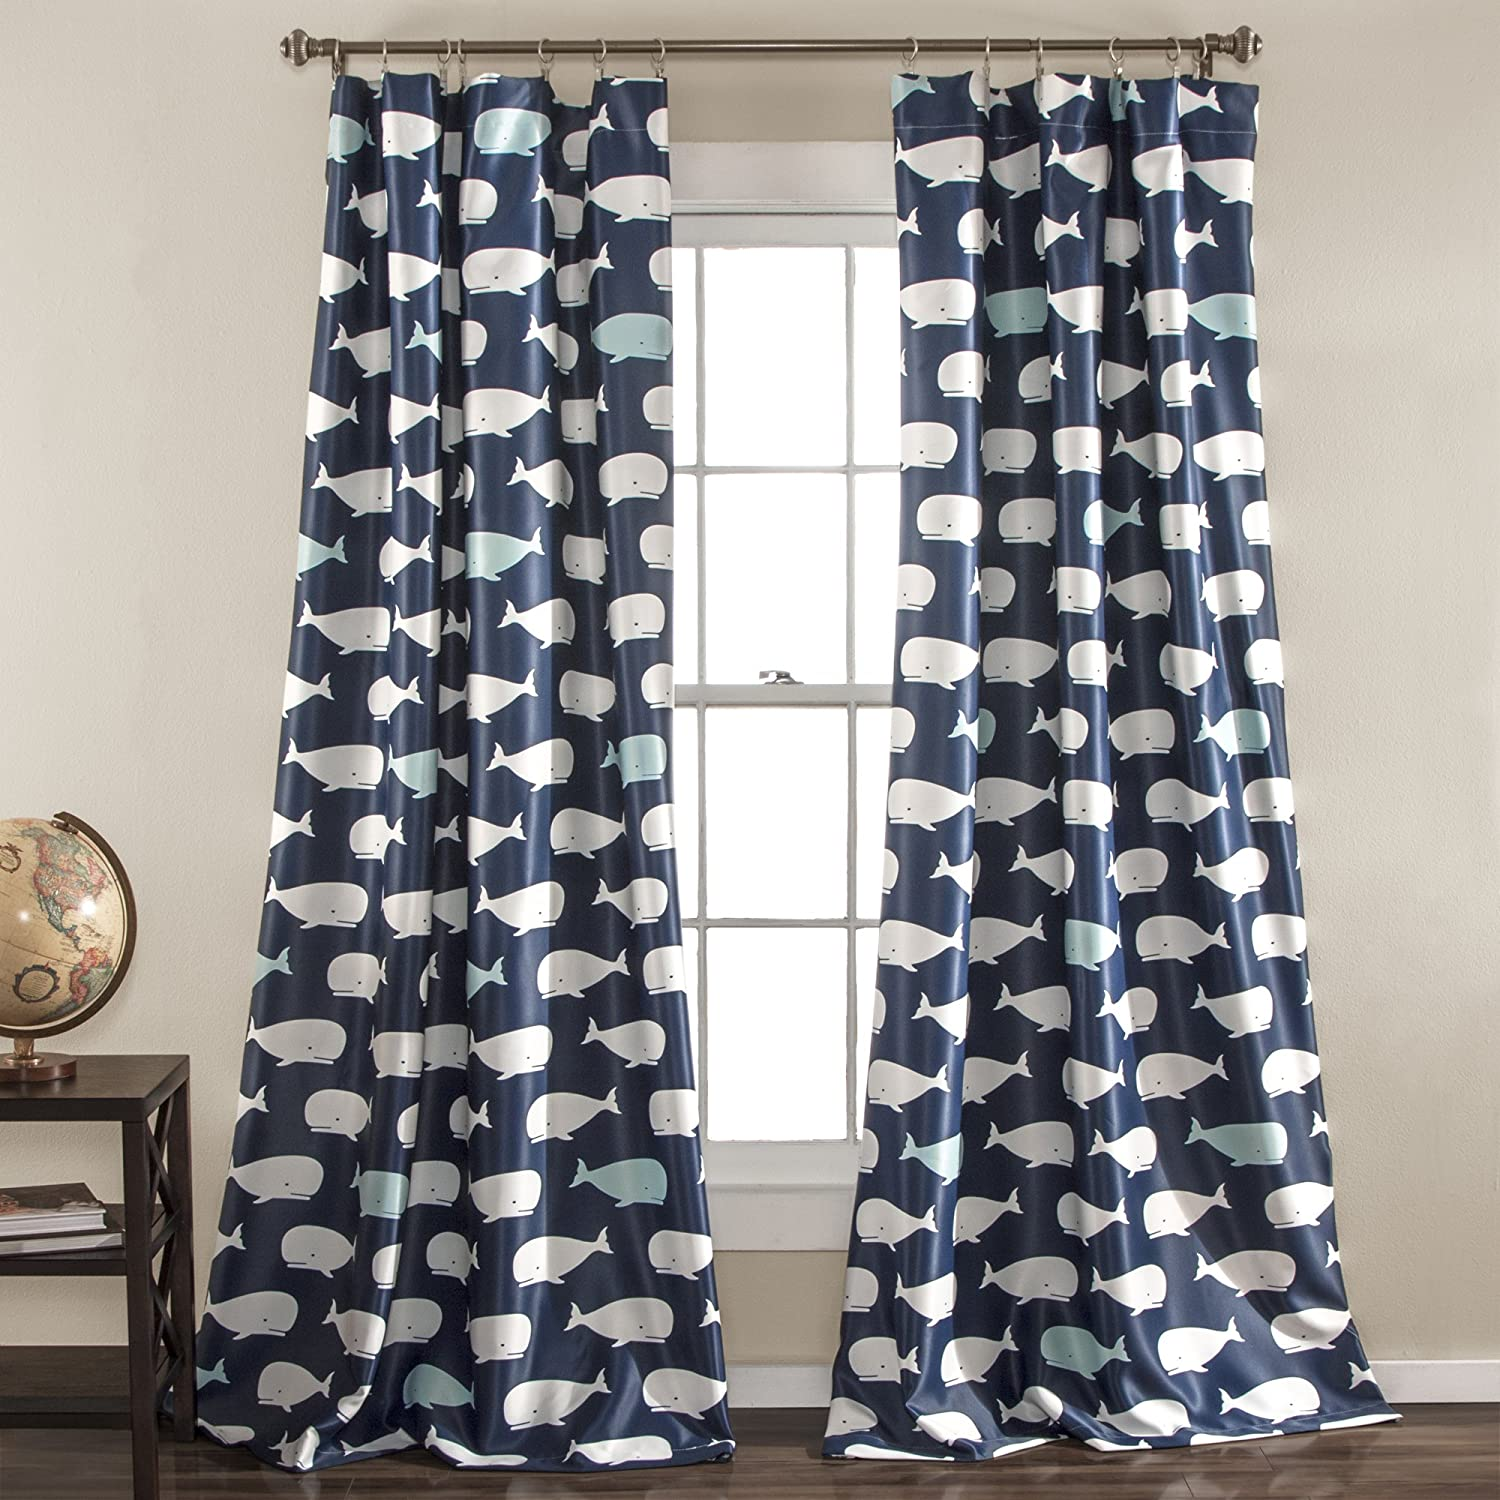 Lush Decor Navy Whale Curtains Animal Ocean Print Design Room Darkening Window Panel Set For Living Dining Bedroom Pair 84 X 52 84 X 52 Home Kitchen